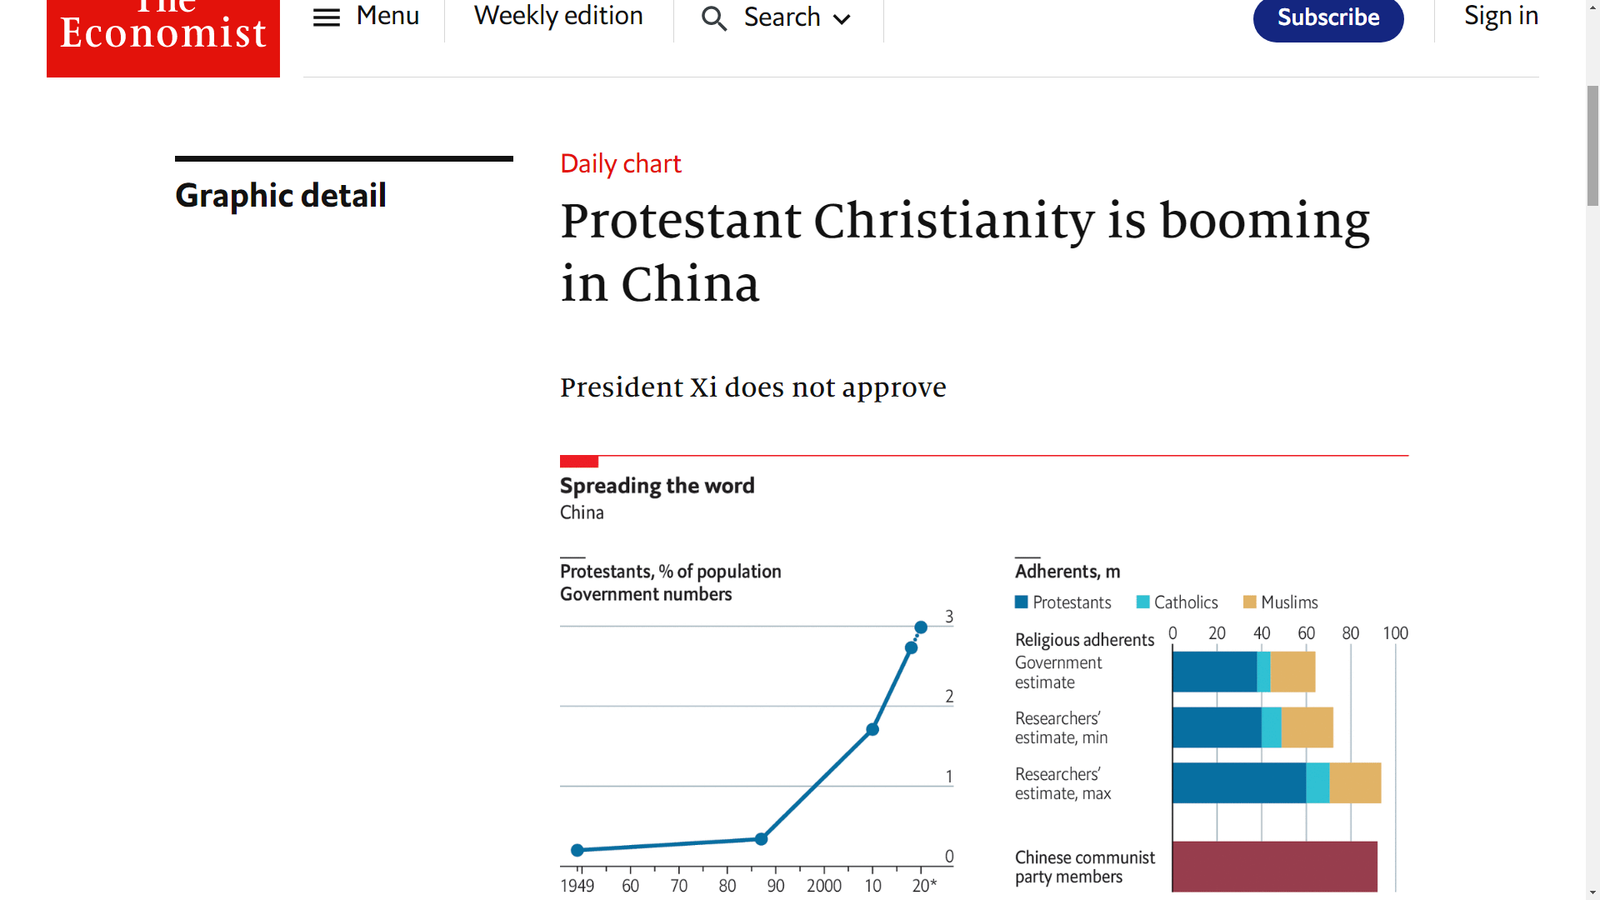 Source: https://www.economist.com/graphic-detail/2020/09/15/protestant-christianity-is-booming-in-china